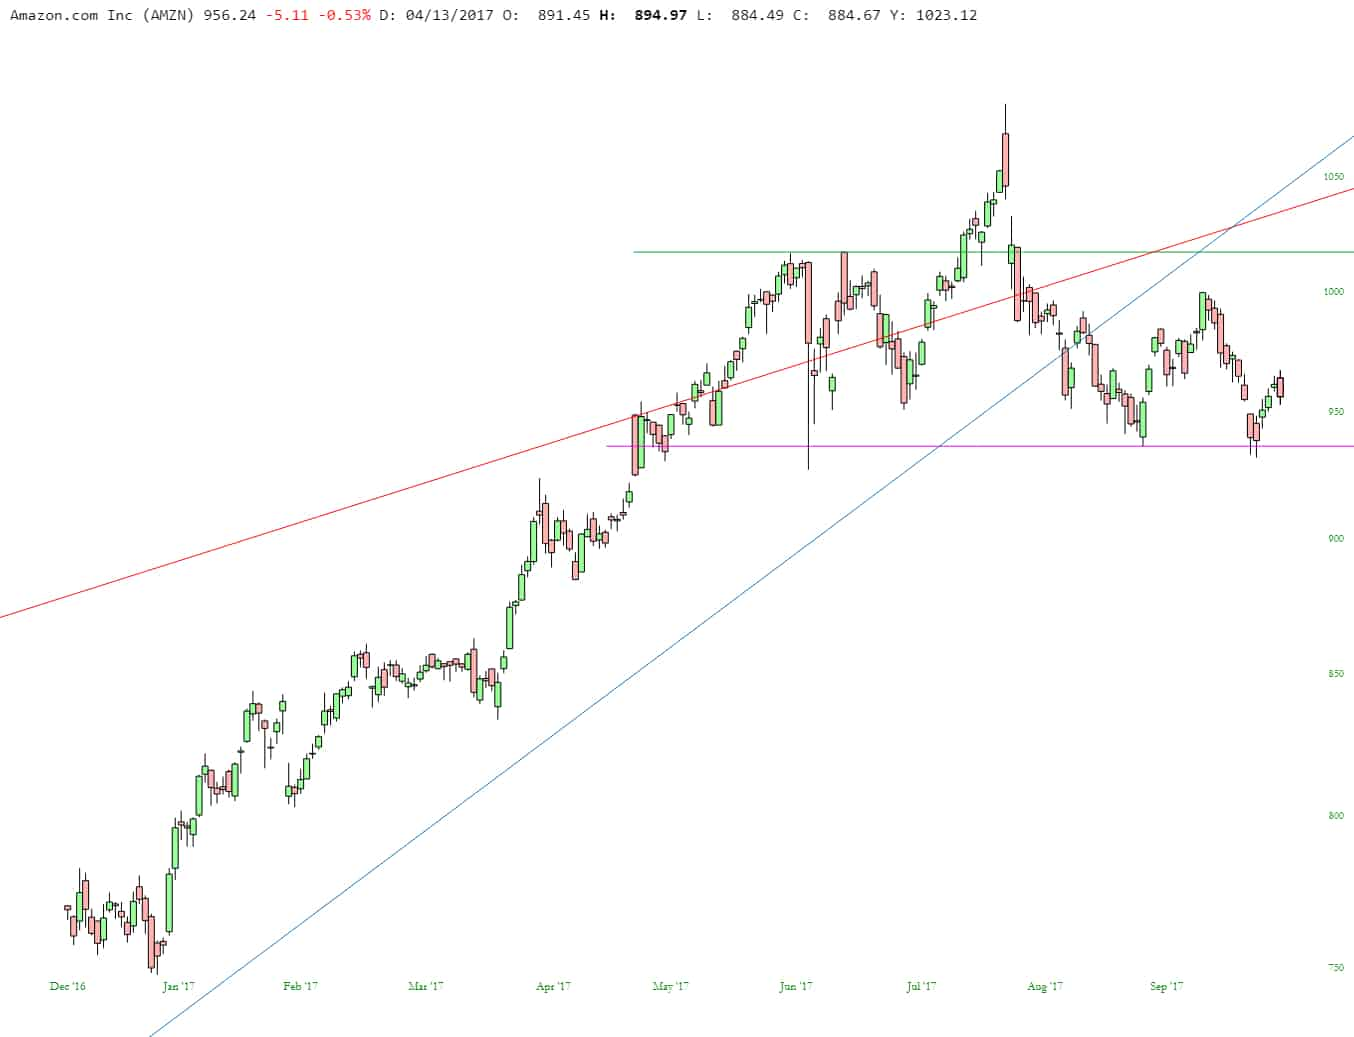 slopechart_AMZN (1)